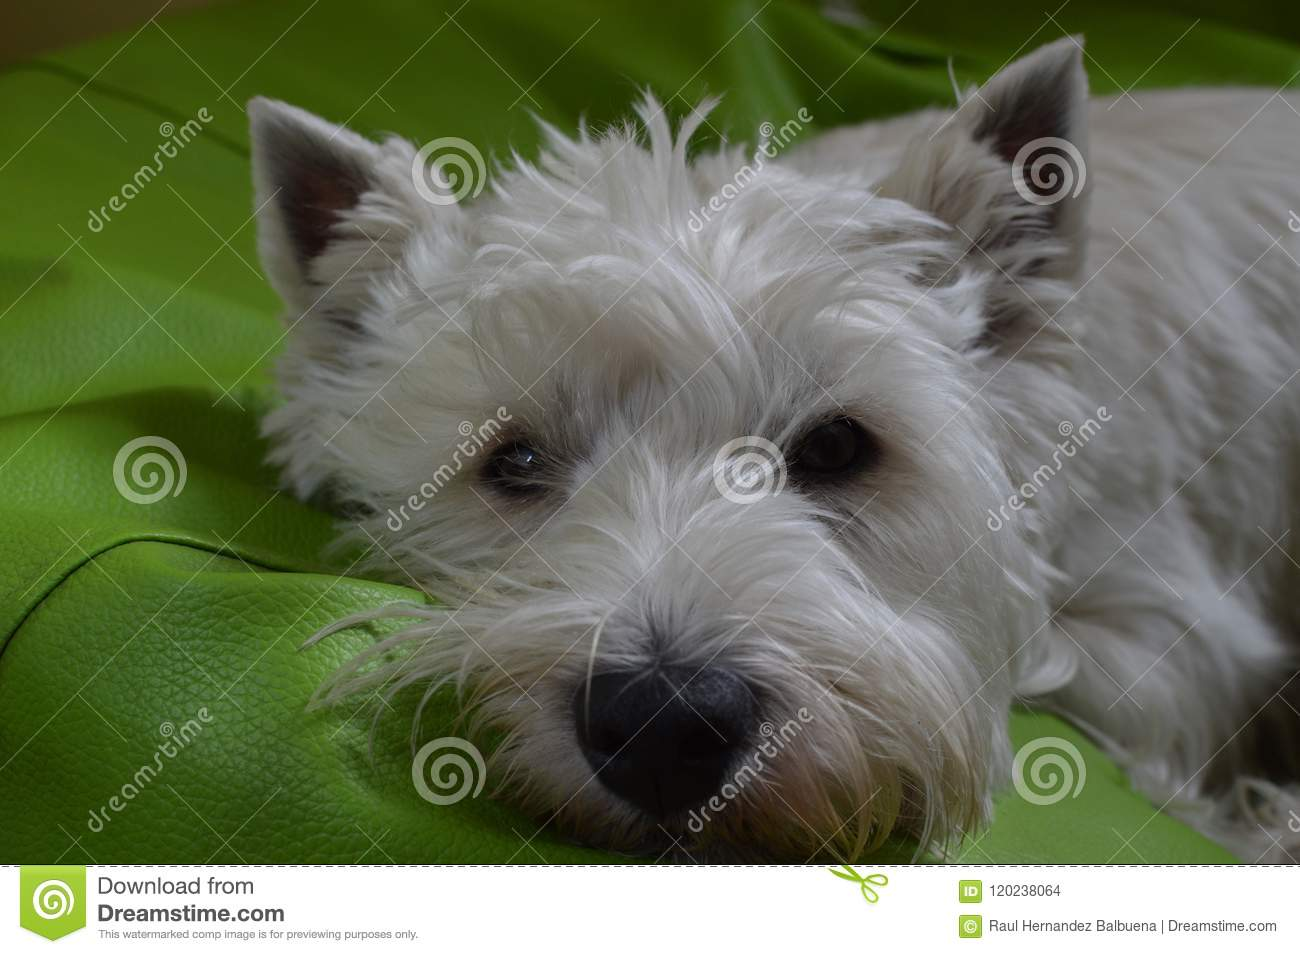 Montagne Terrier blanc occidentale se trouvant sur son lit Westy Nature, chien, animal familier, portrait